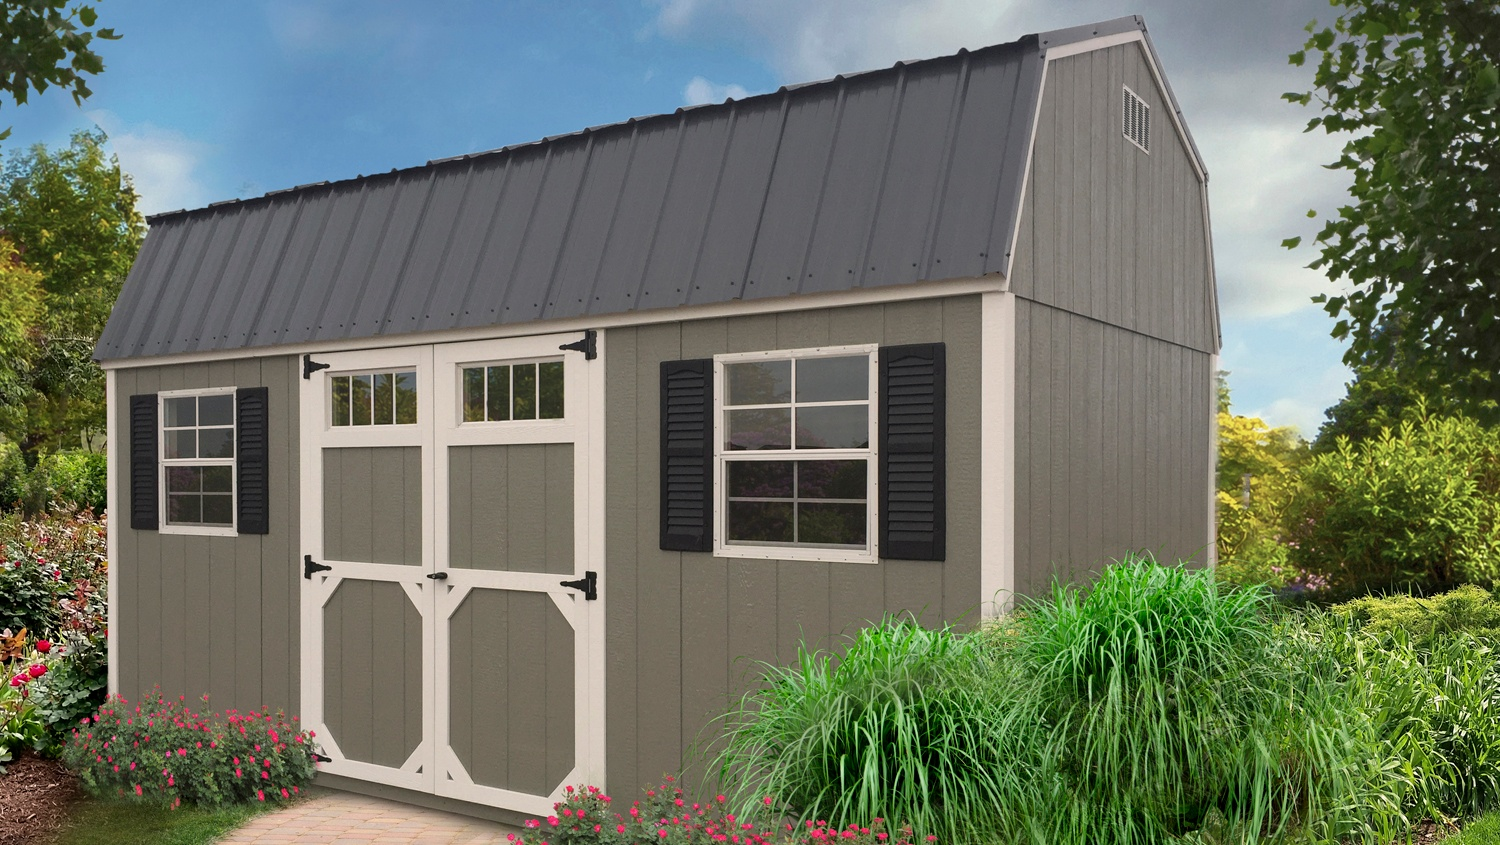 Pre-built Storage Shed - High Barn - Grey & White